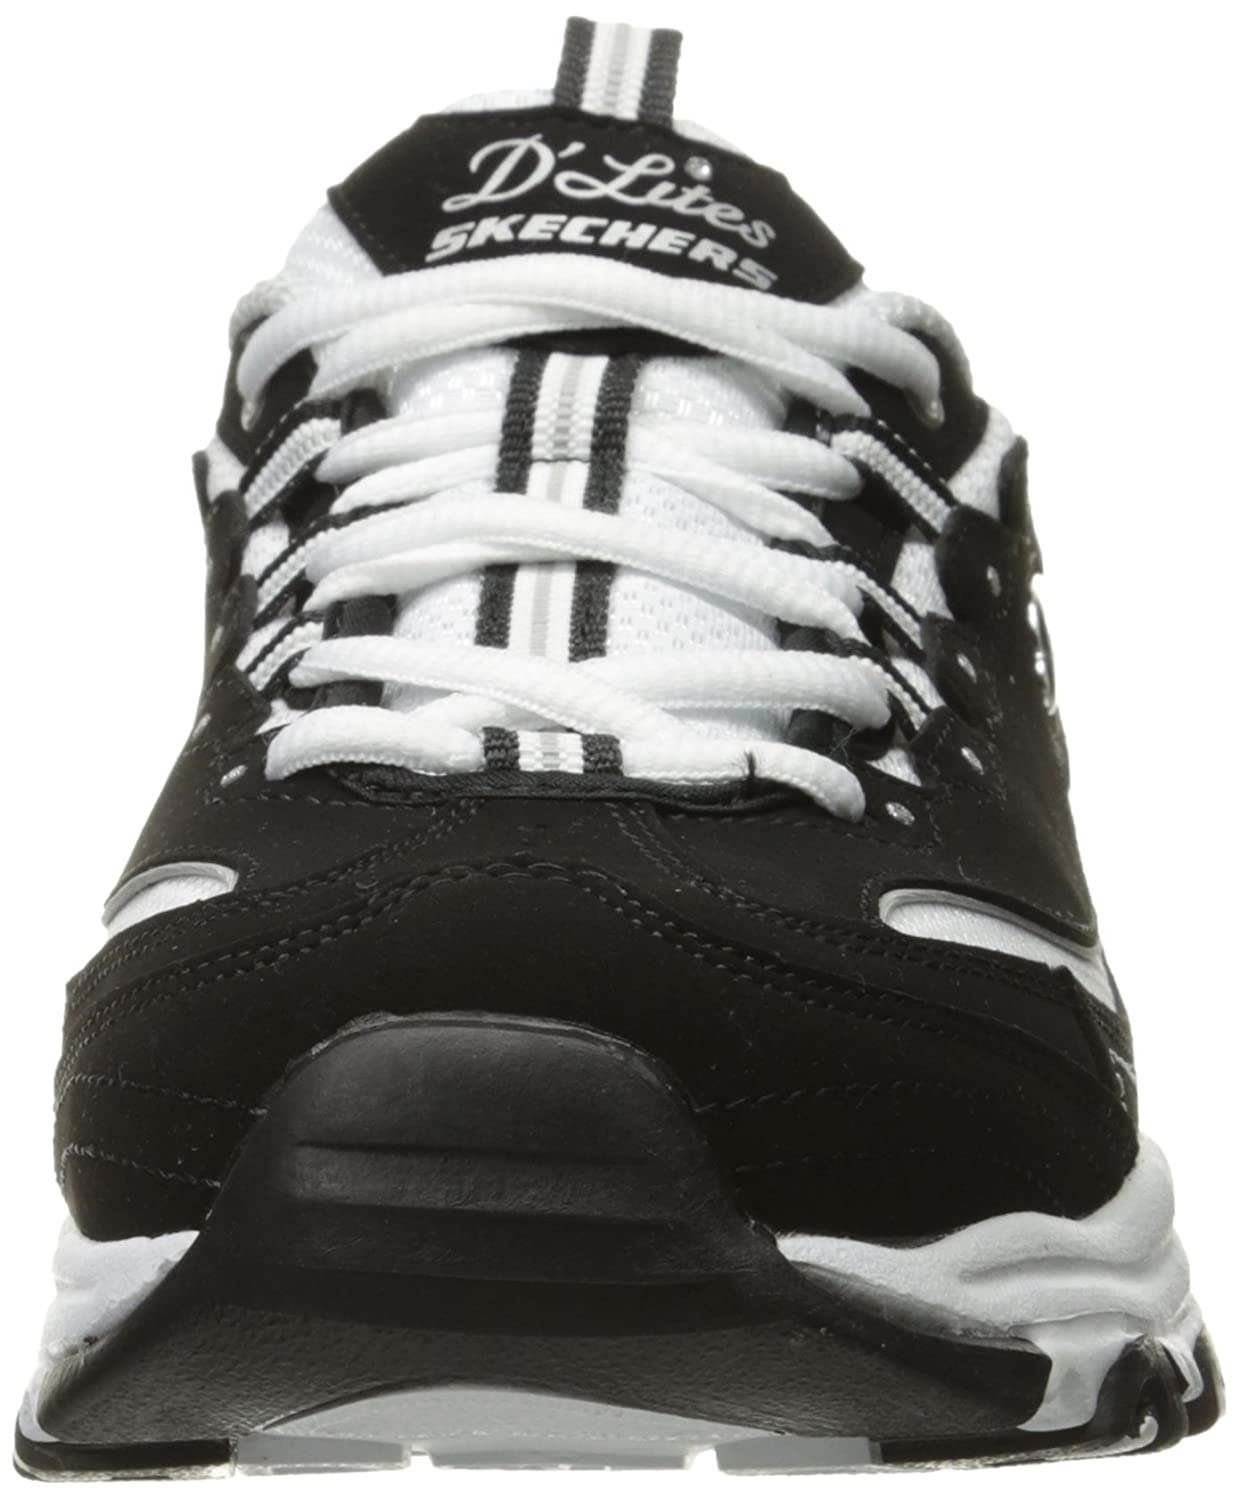 Skechers-D-039-Lites-Women-039-s-Casual-Lightweight-Fashion-Sneakers-Athletic-Shoes thumbnail 3